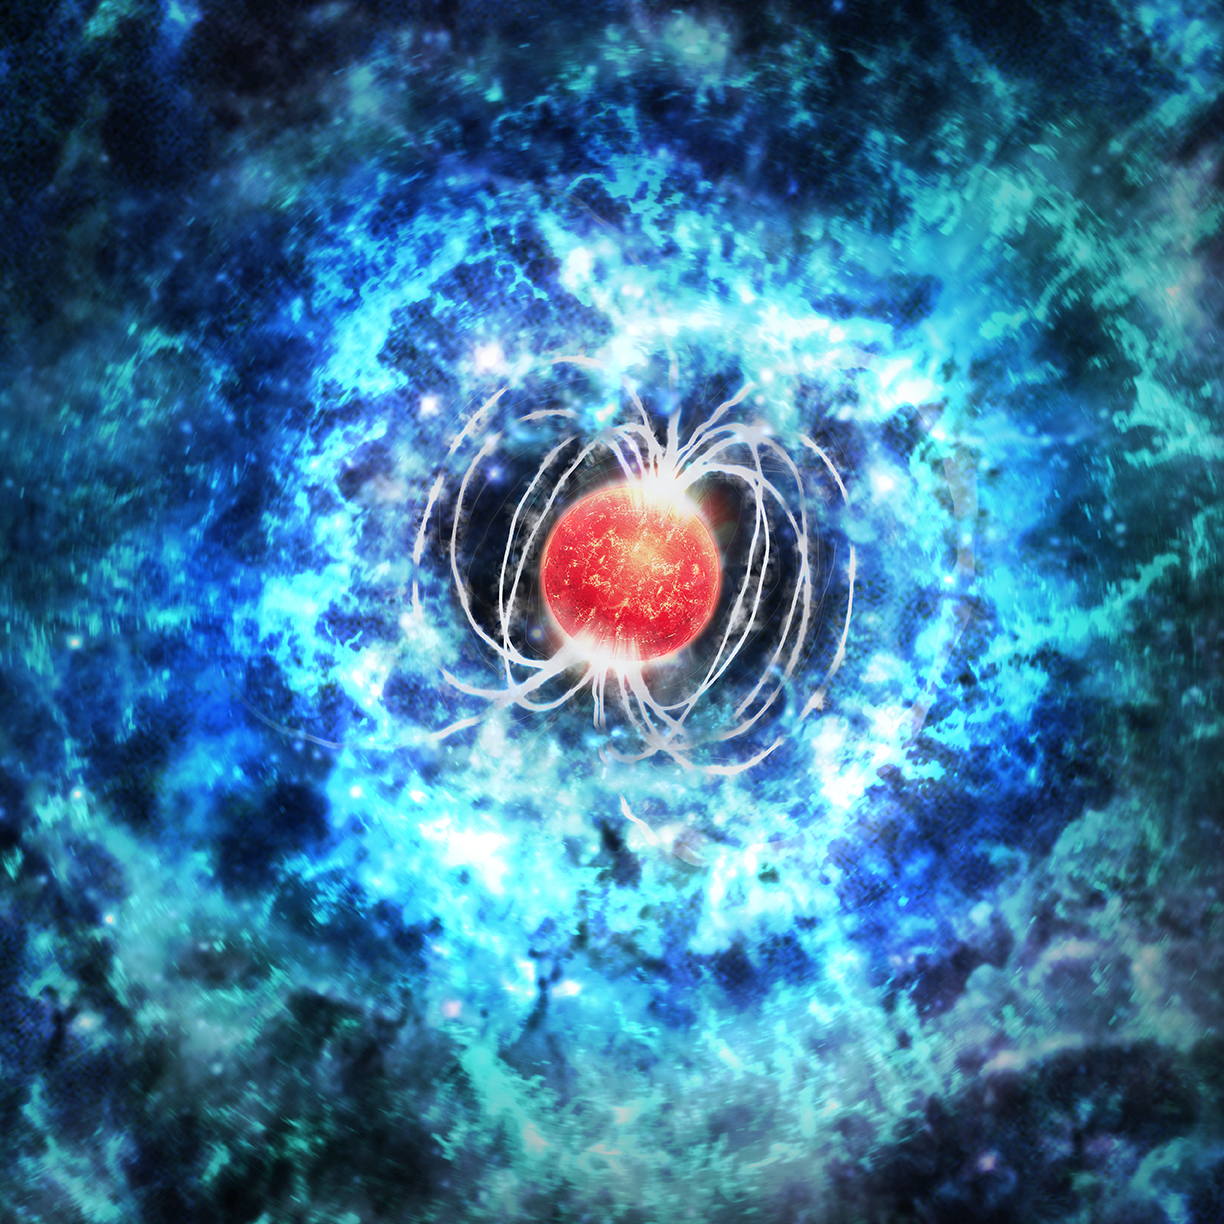 Artist's impression of a newborn magnetar embedded in a superluminous supernova. The magnetic spin-down power can keep the ejecta hotter for longer than in a normal supernova, making it glow brighter and bluer. (Credit: M. Weiss/CfA)